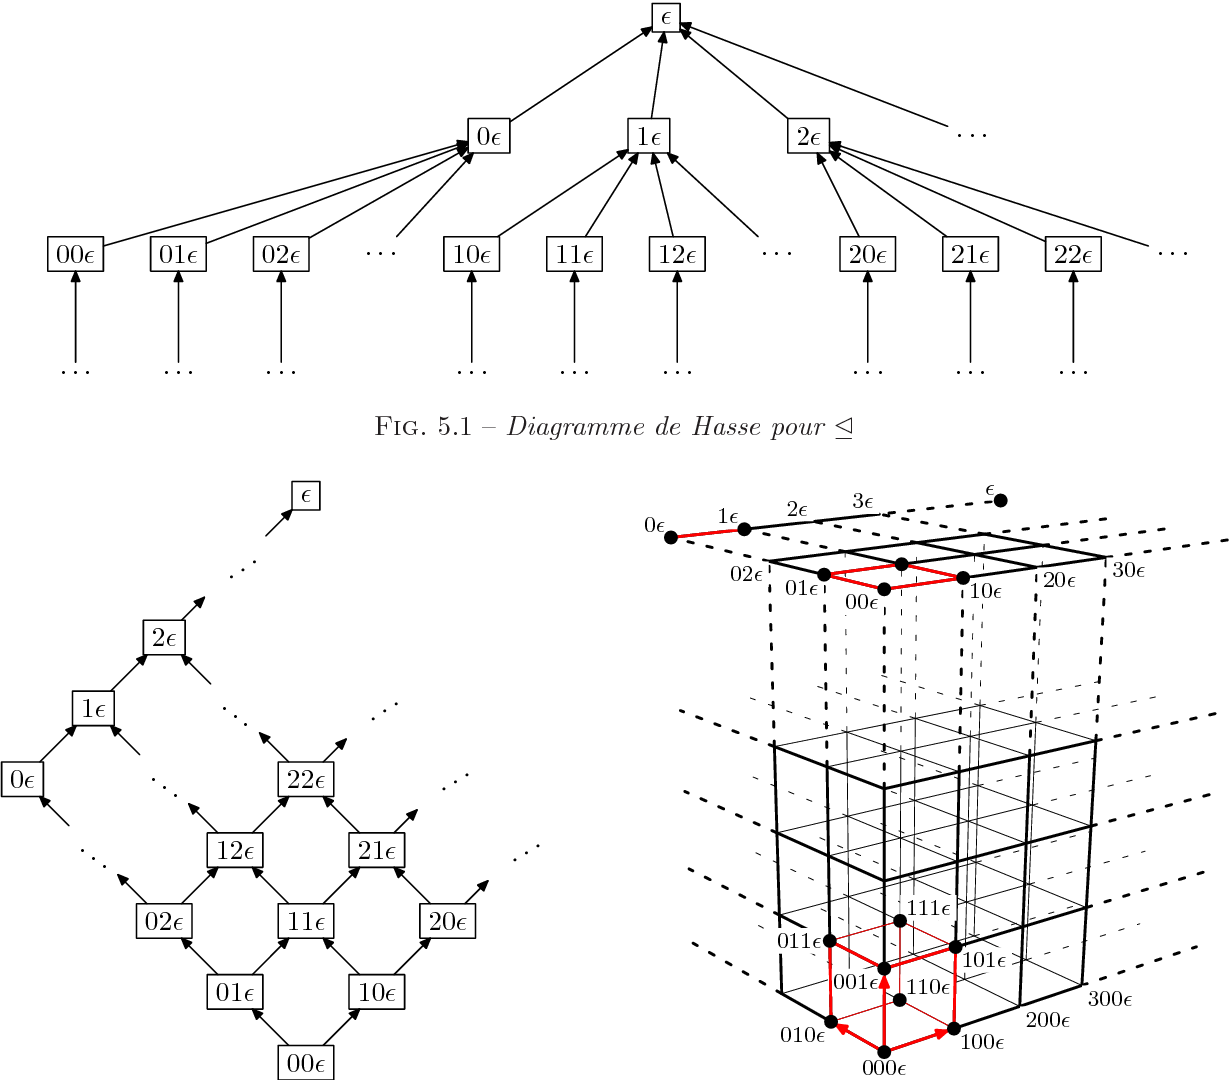 hight resolution of 5 1 diagramme de hasse pour